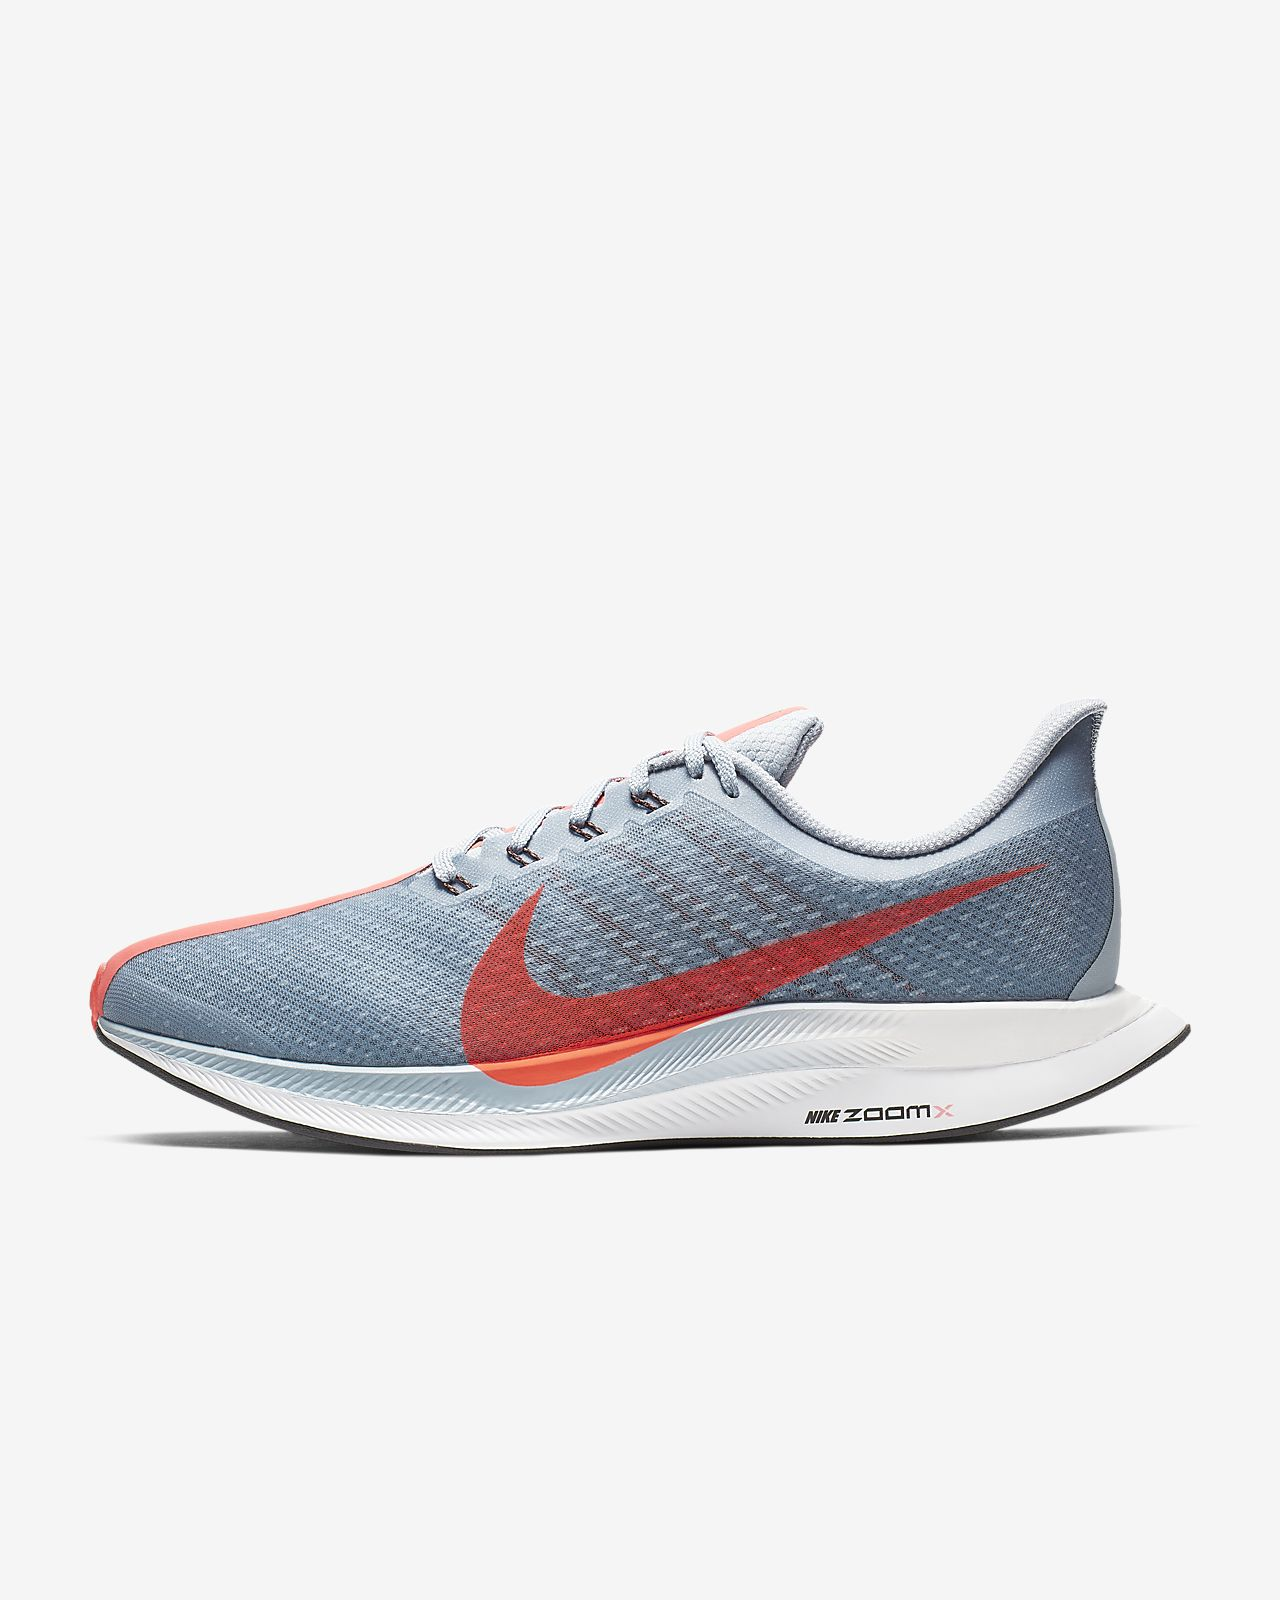 on sale a1a80 c9f6c Men s Running Shoe. Nike Zoom Pegasus Turbo